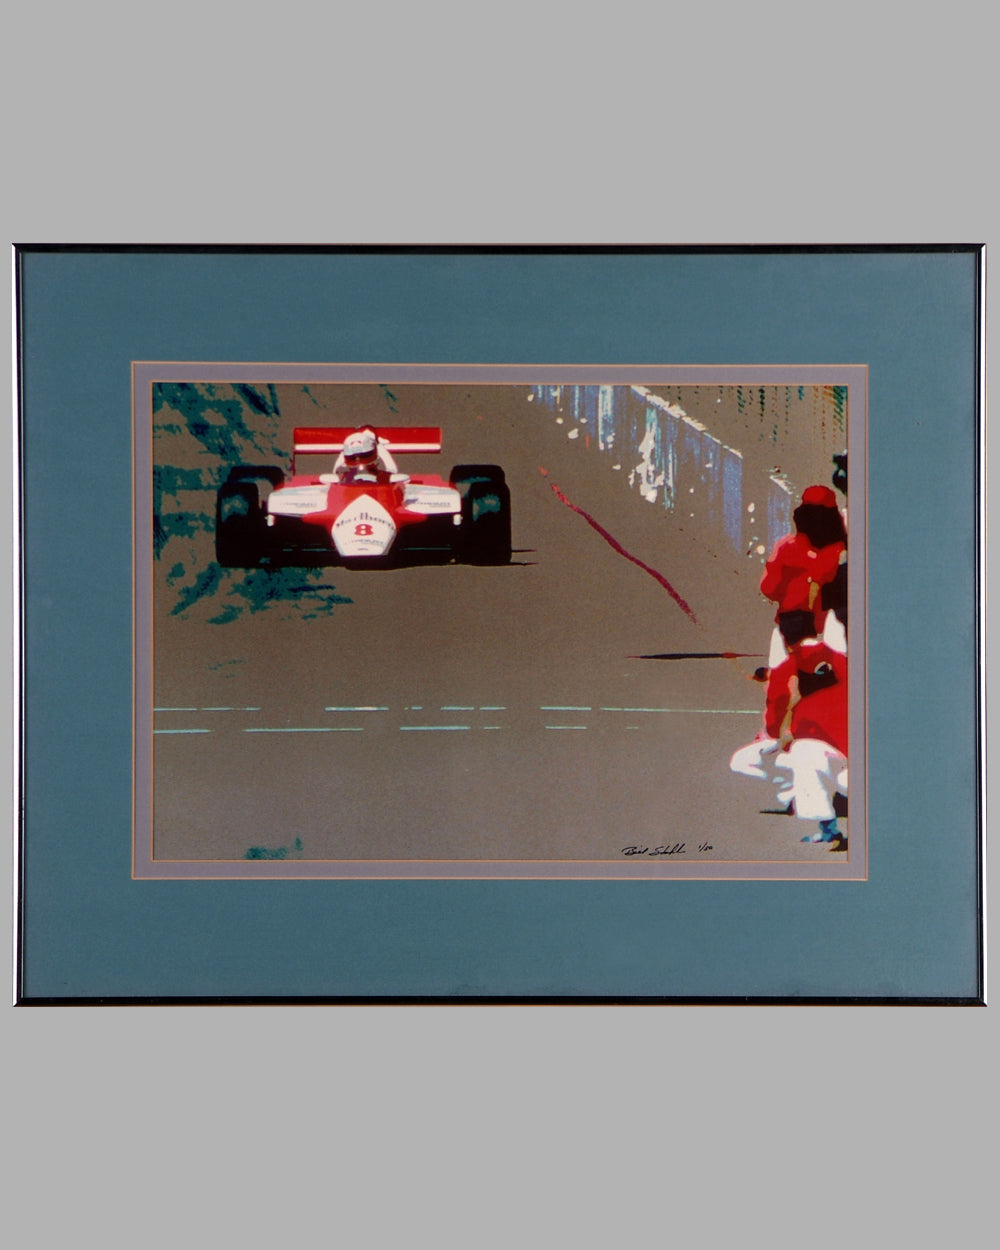 1983 Long Beach Grand Prix print of Niki Lauda's McLaren-Ford by Bill Stahl